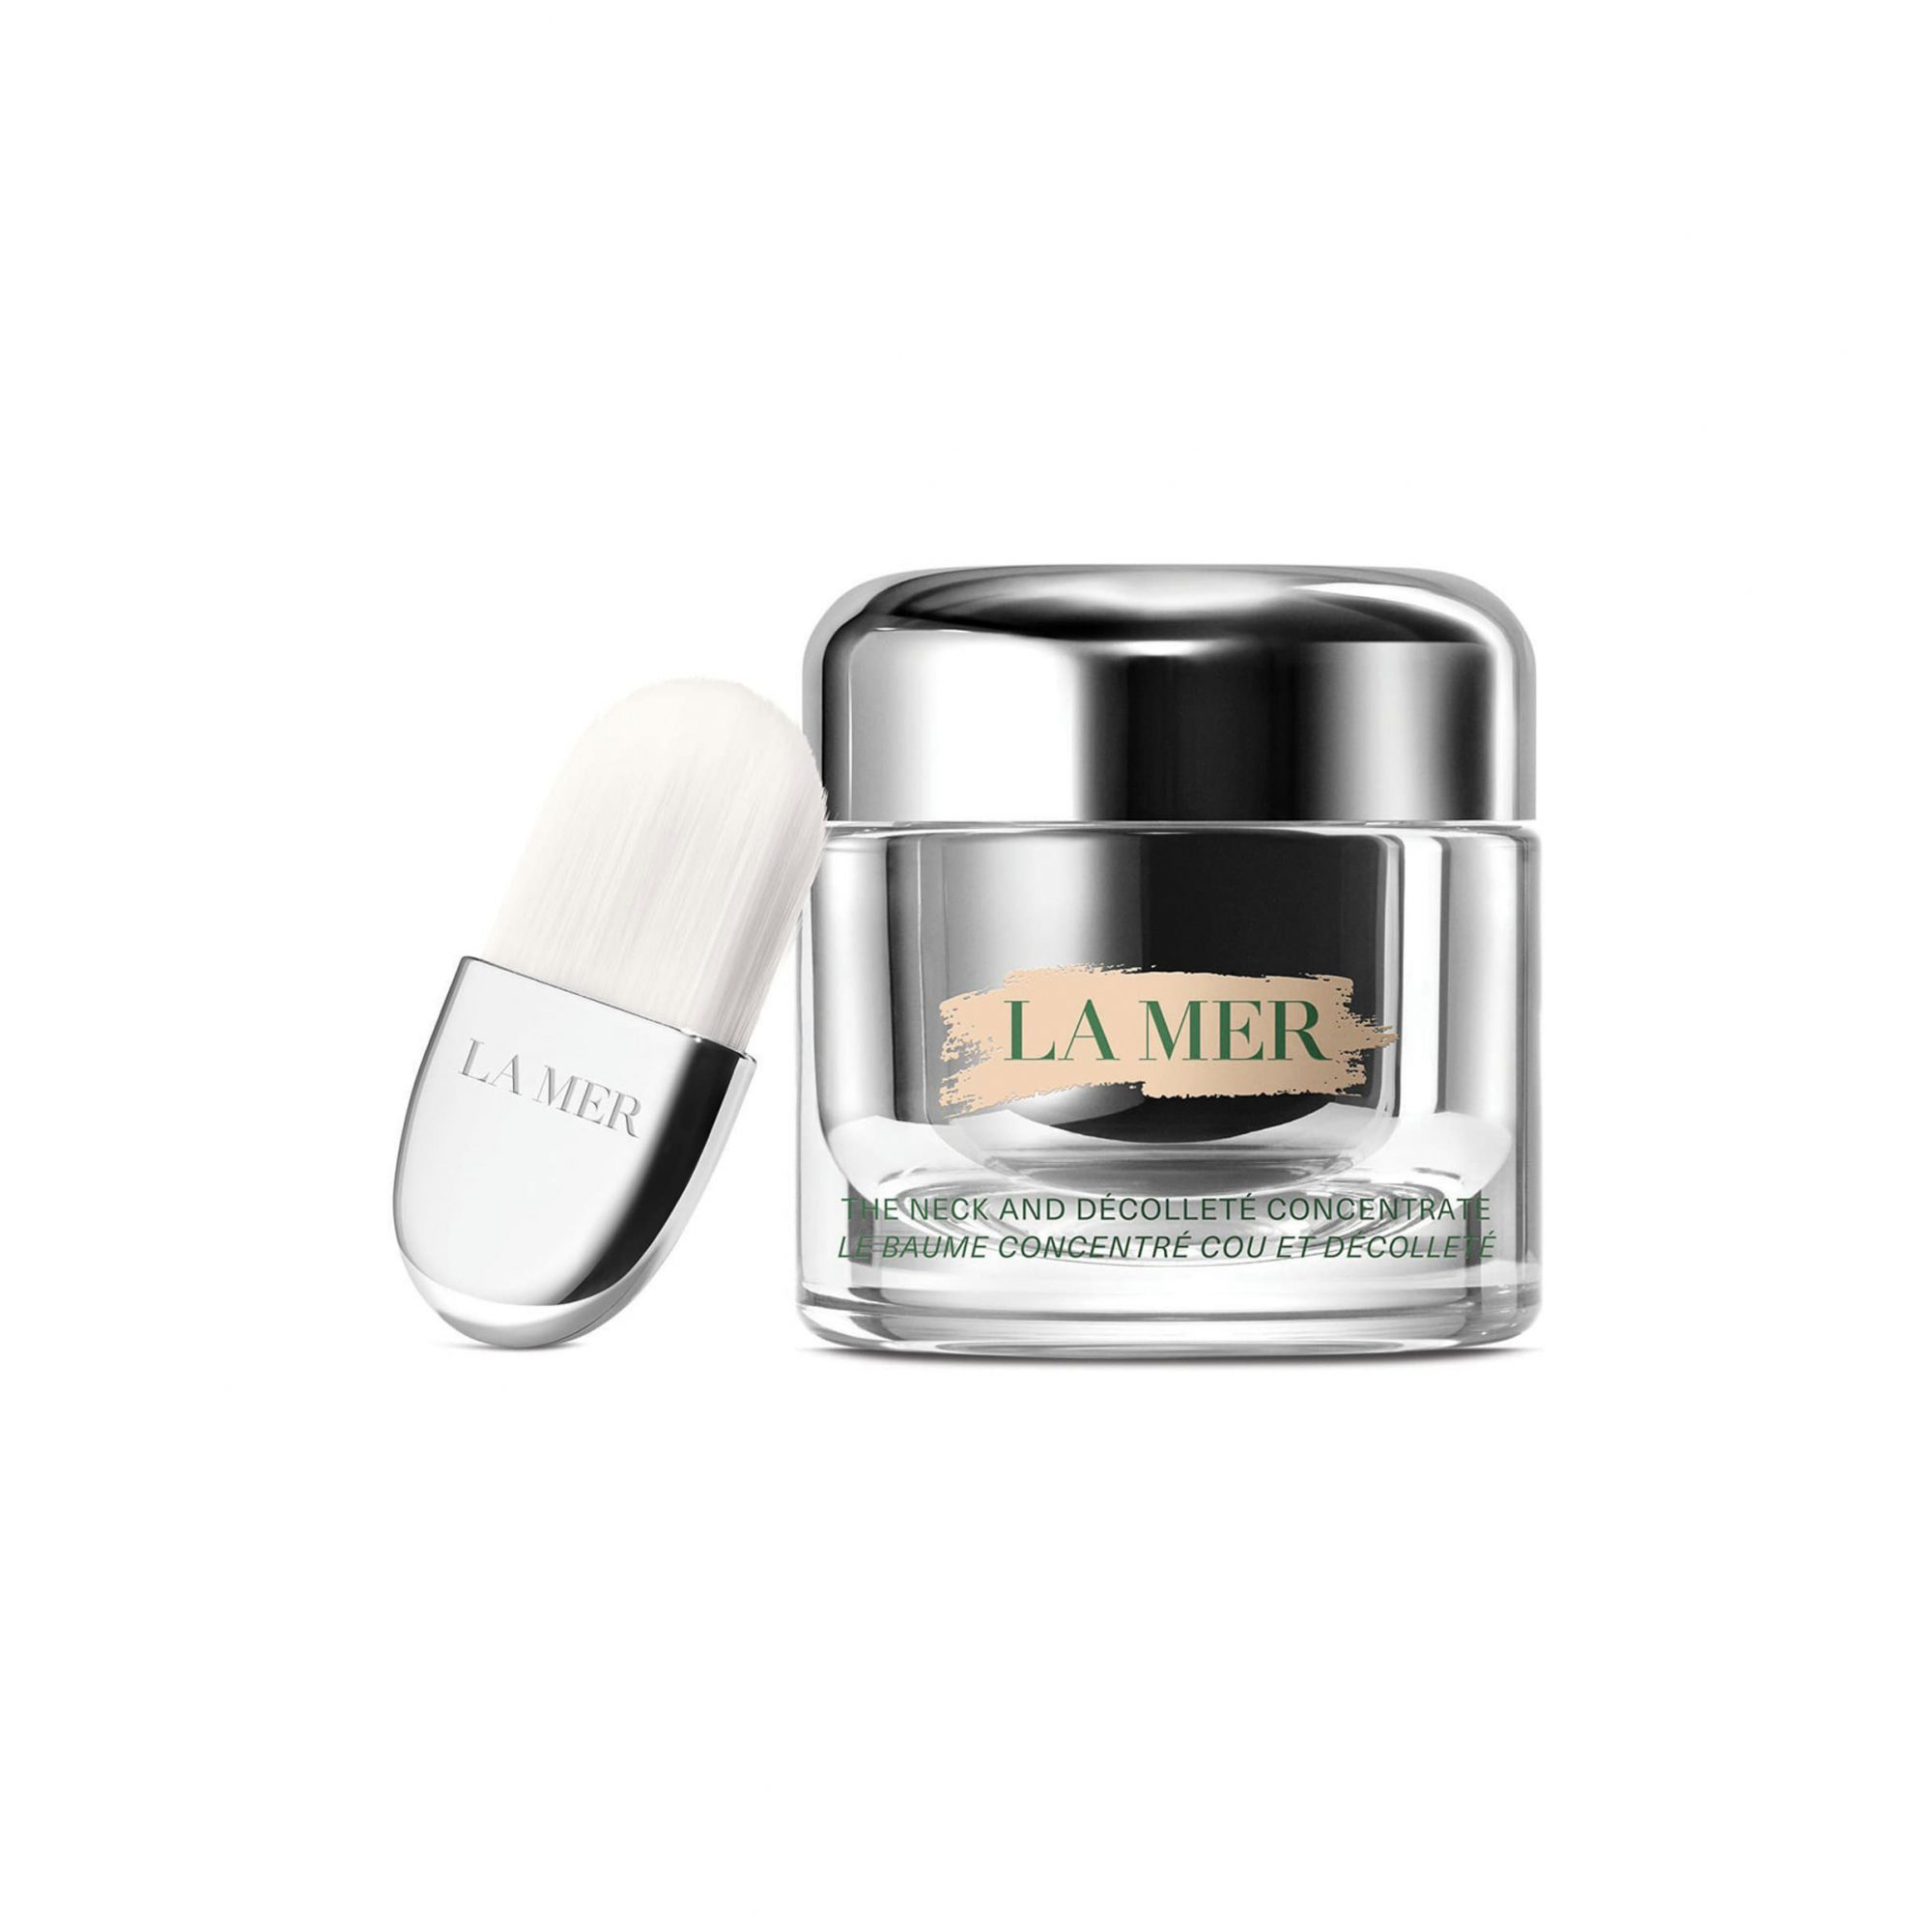 La Mer The Neck and Décolleté Concentrate